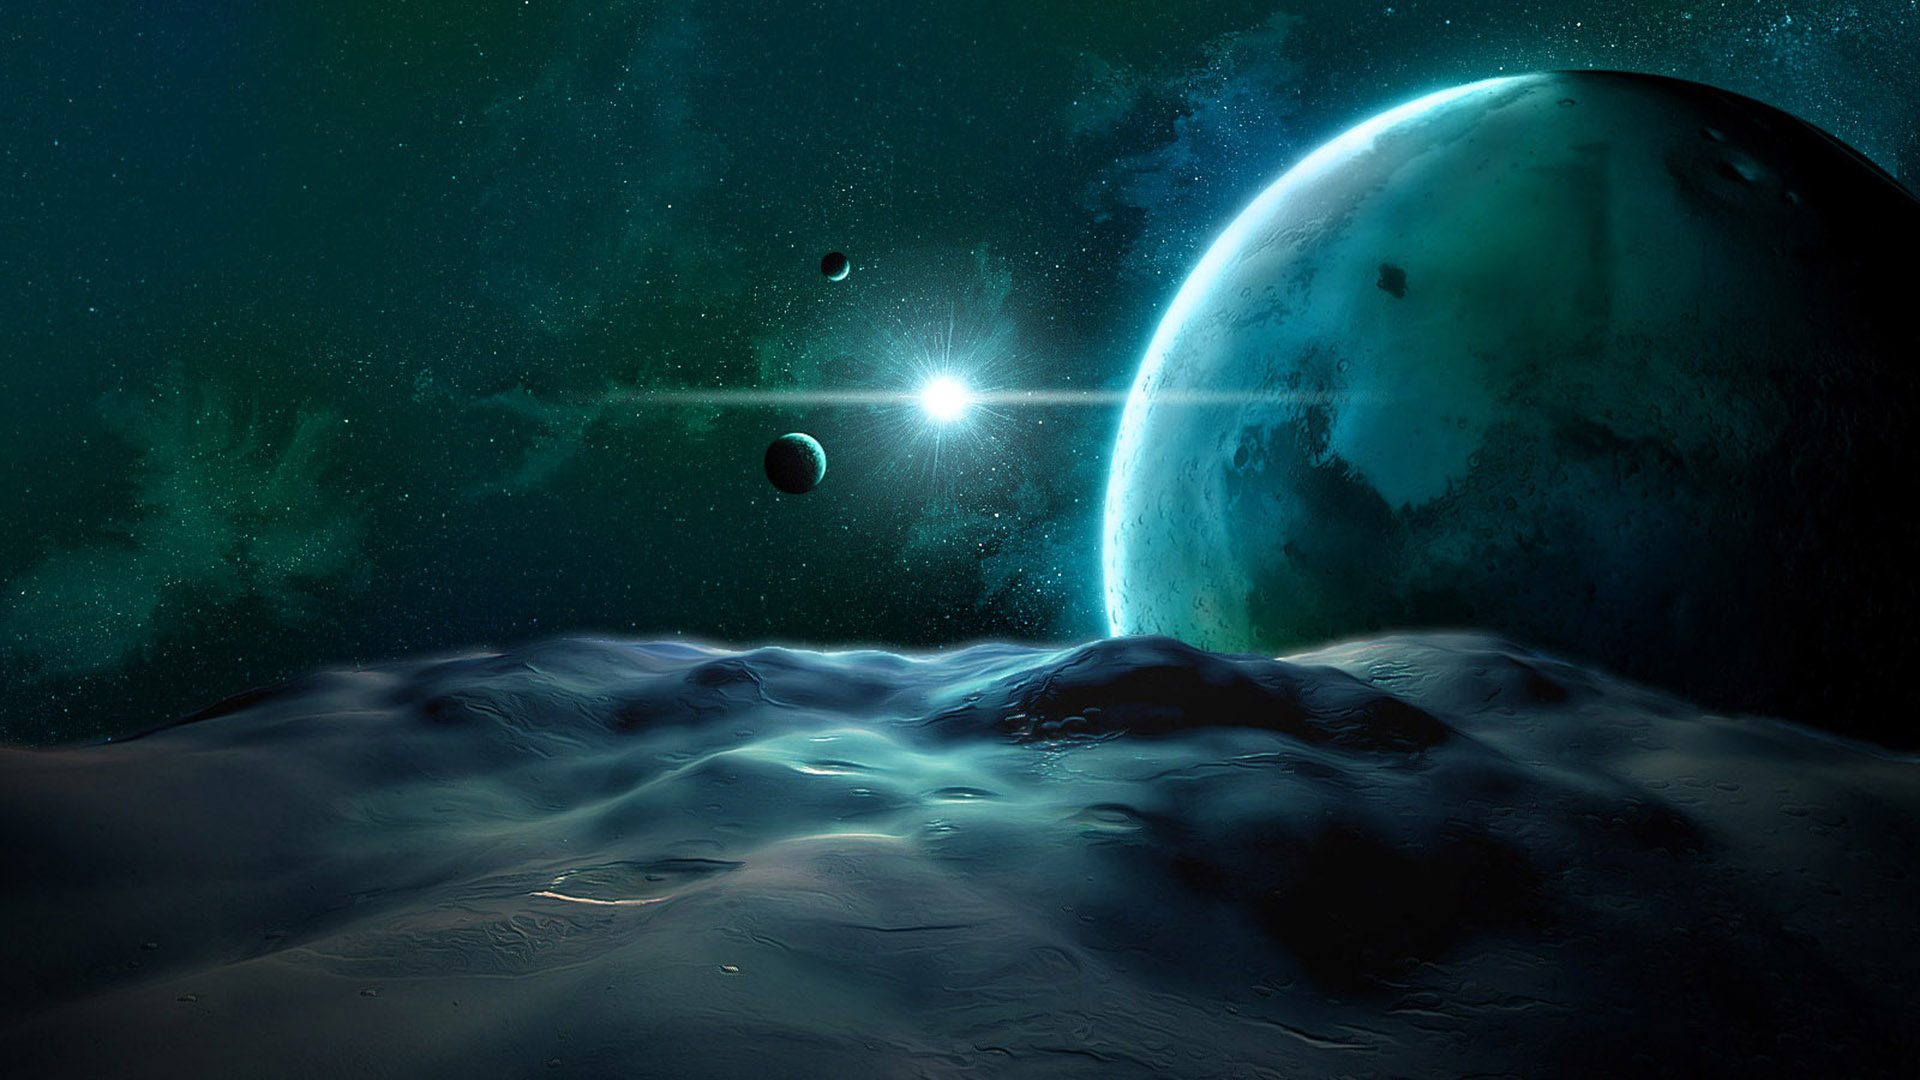 Space wallpaper art originals 1920x1080